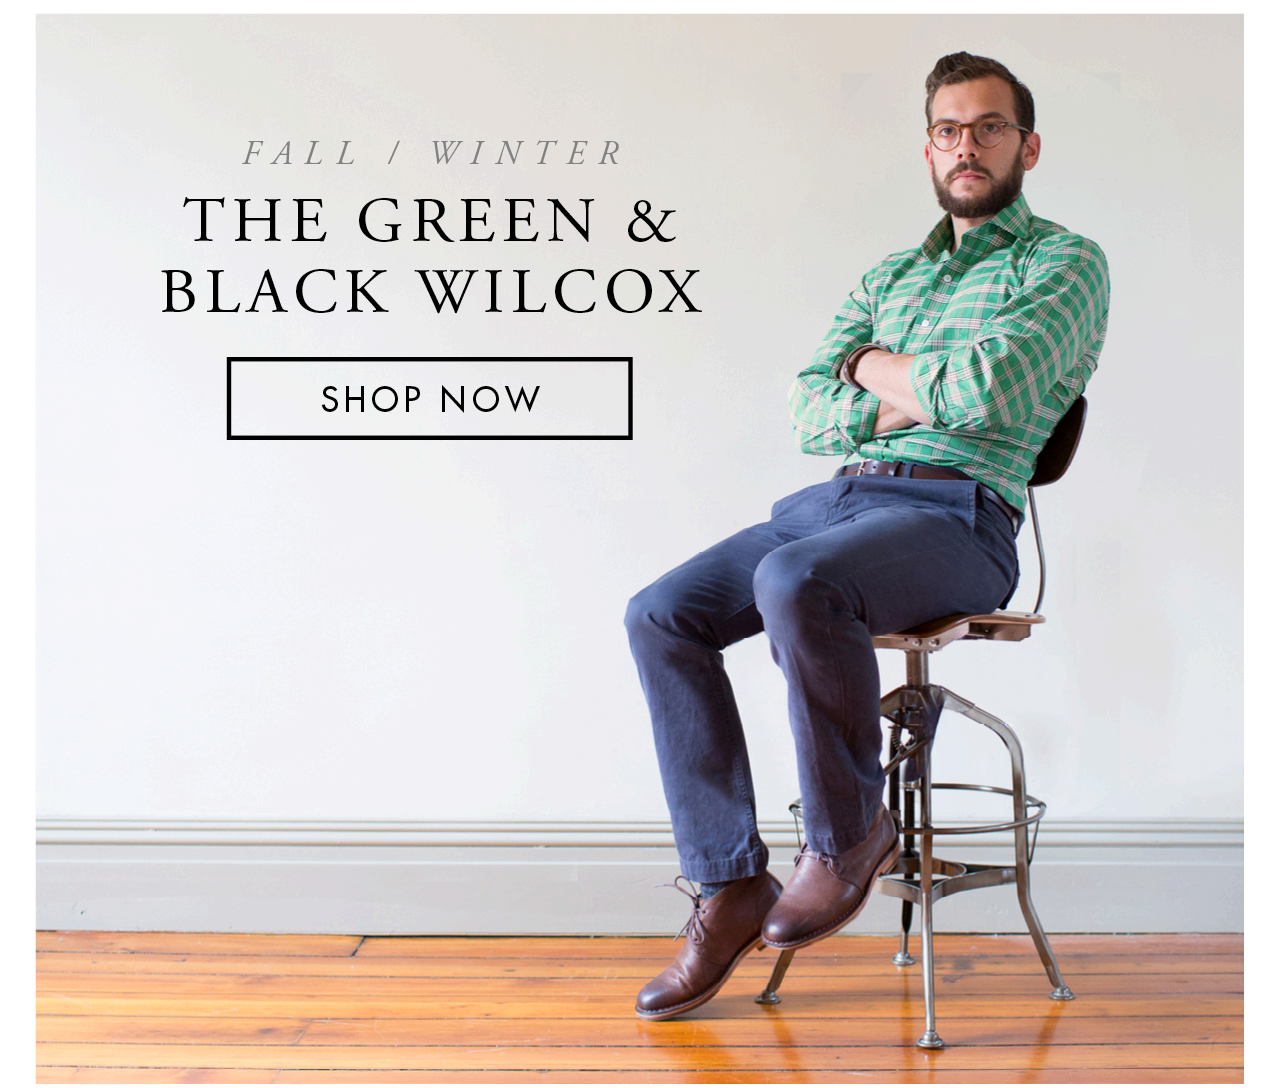 The Green and Black Wilcox